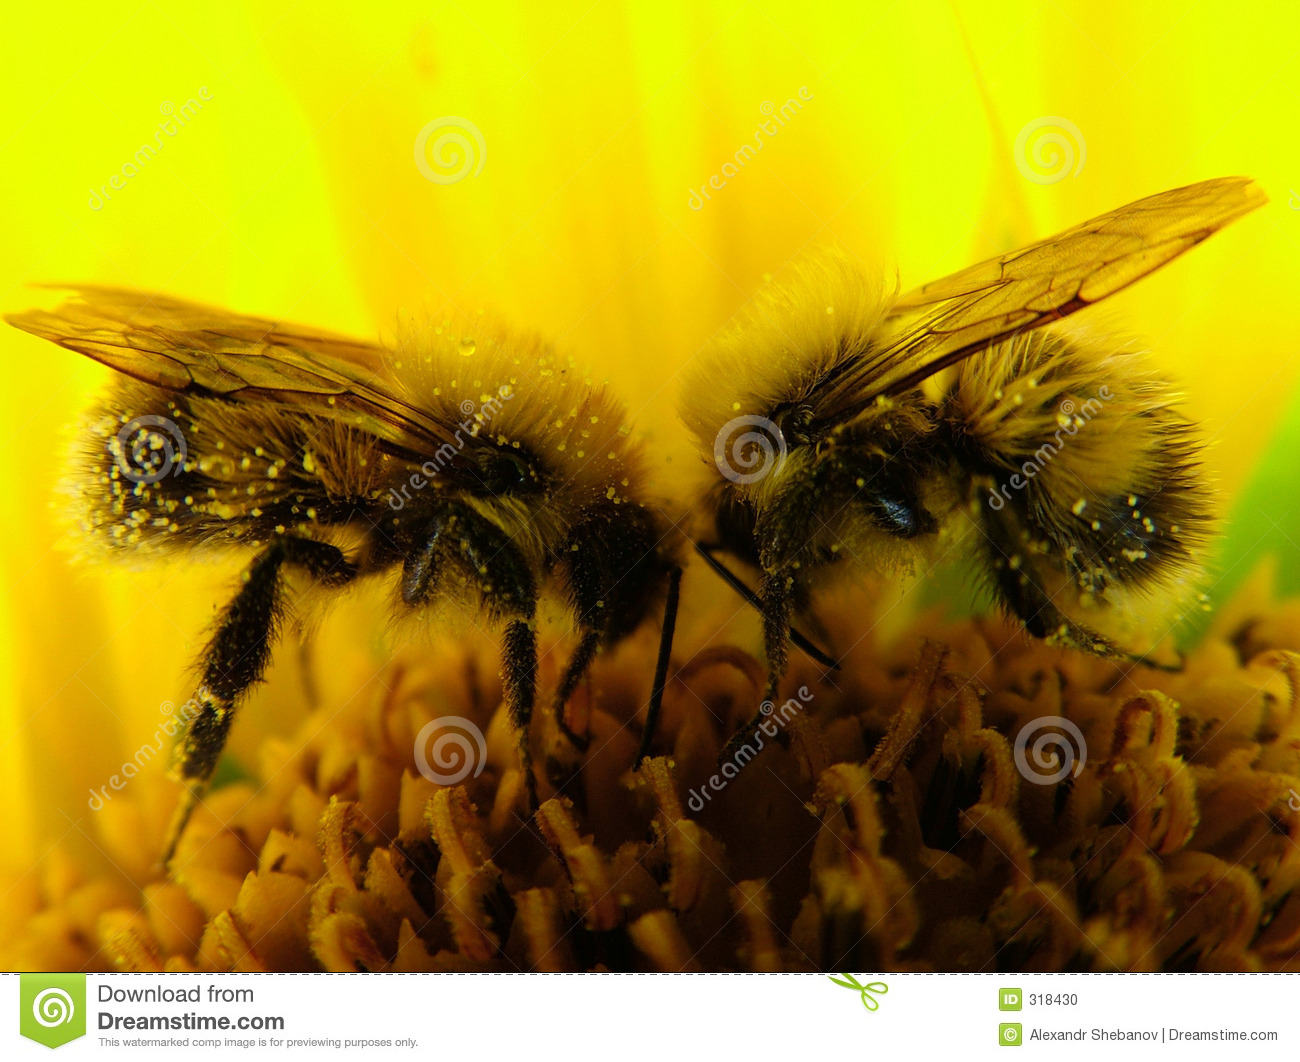 Bees - team work